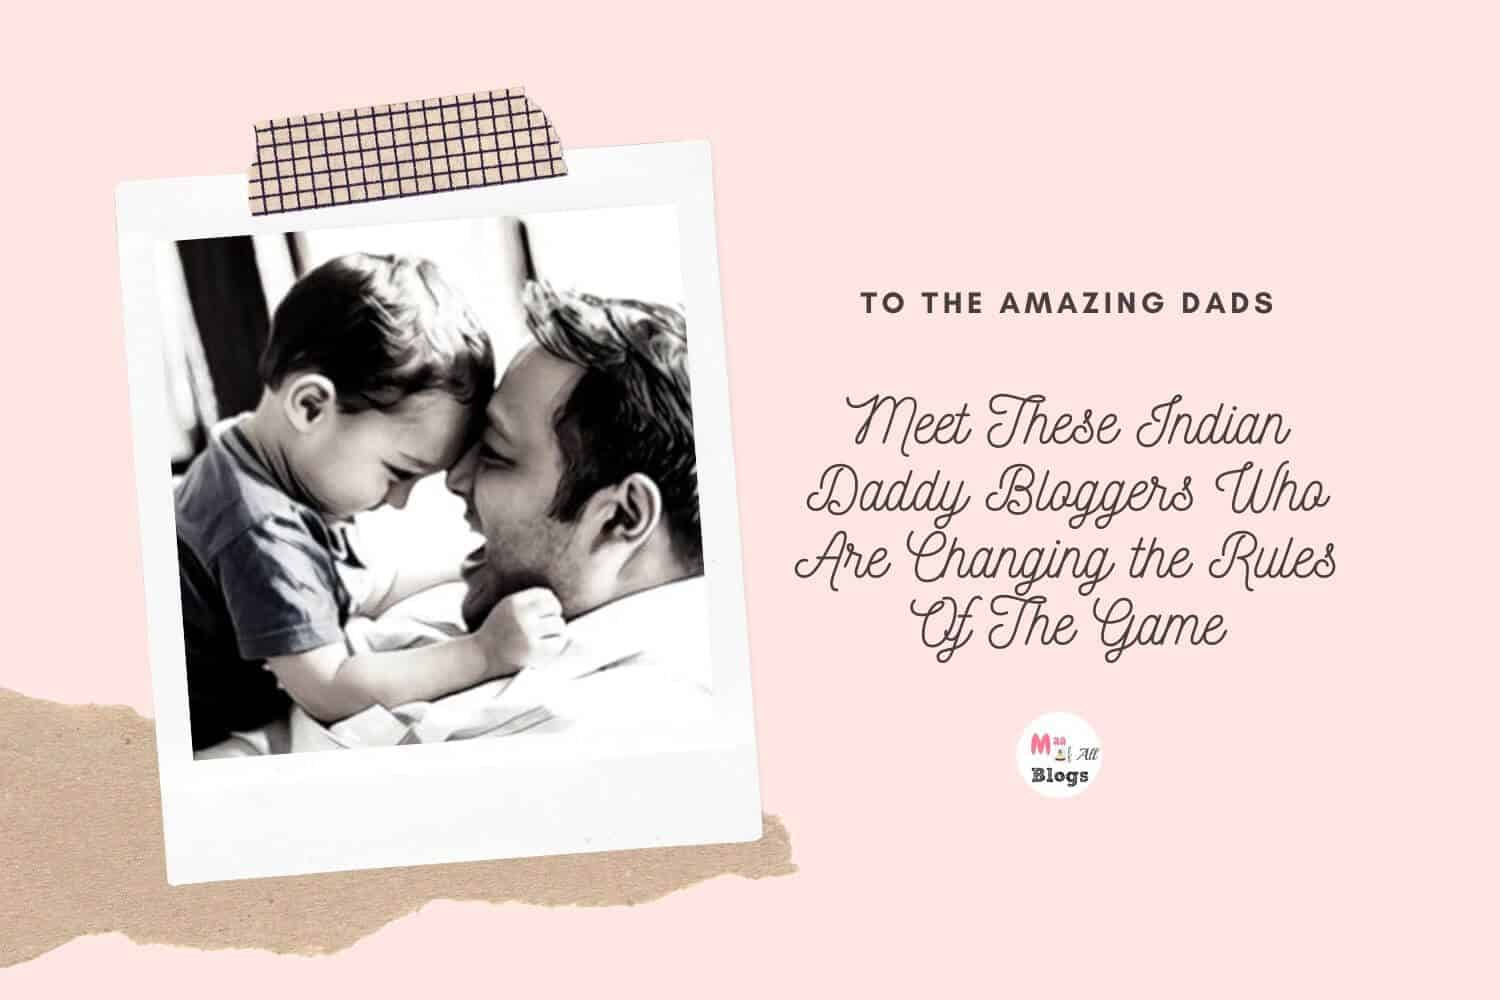 Indian Daddy Bloggers